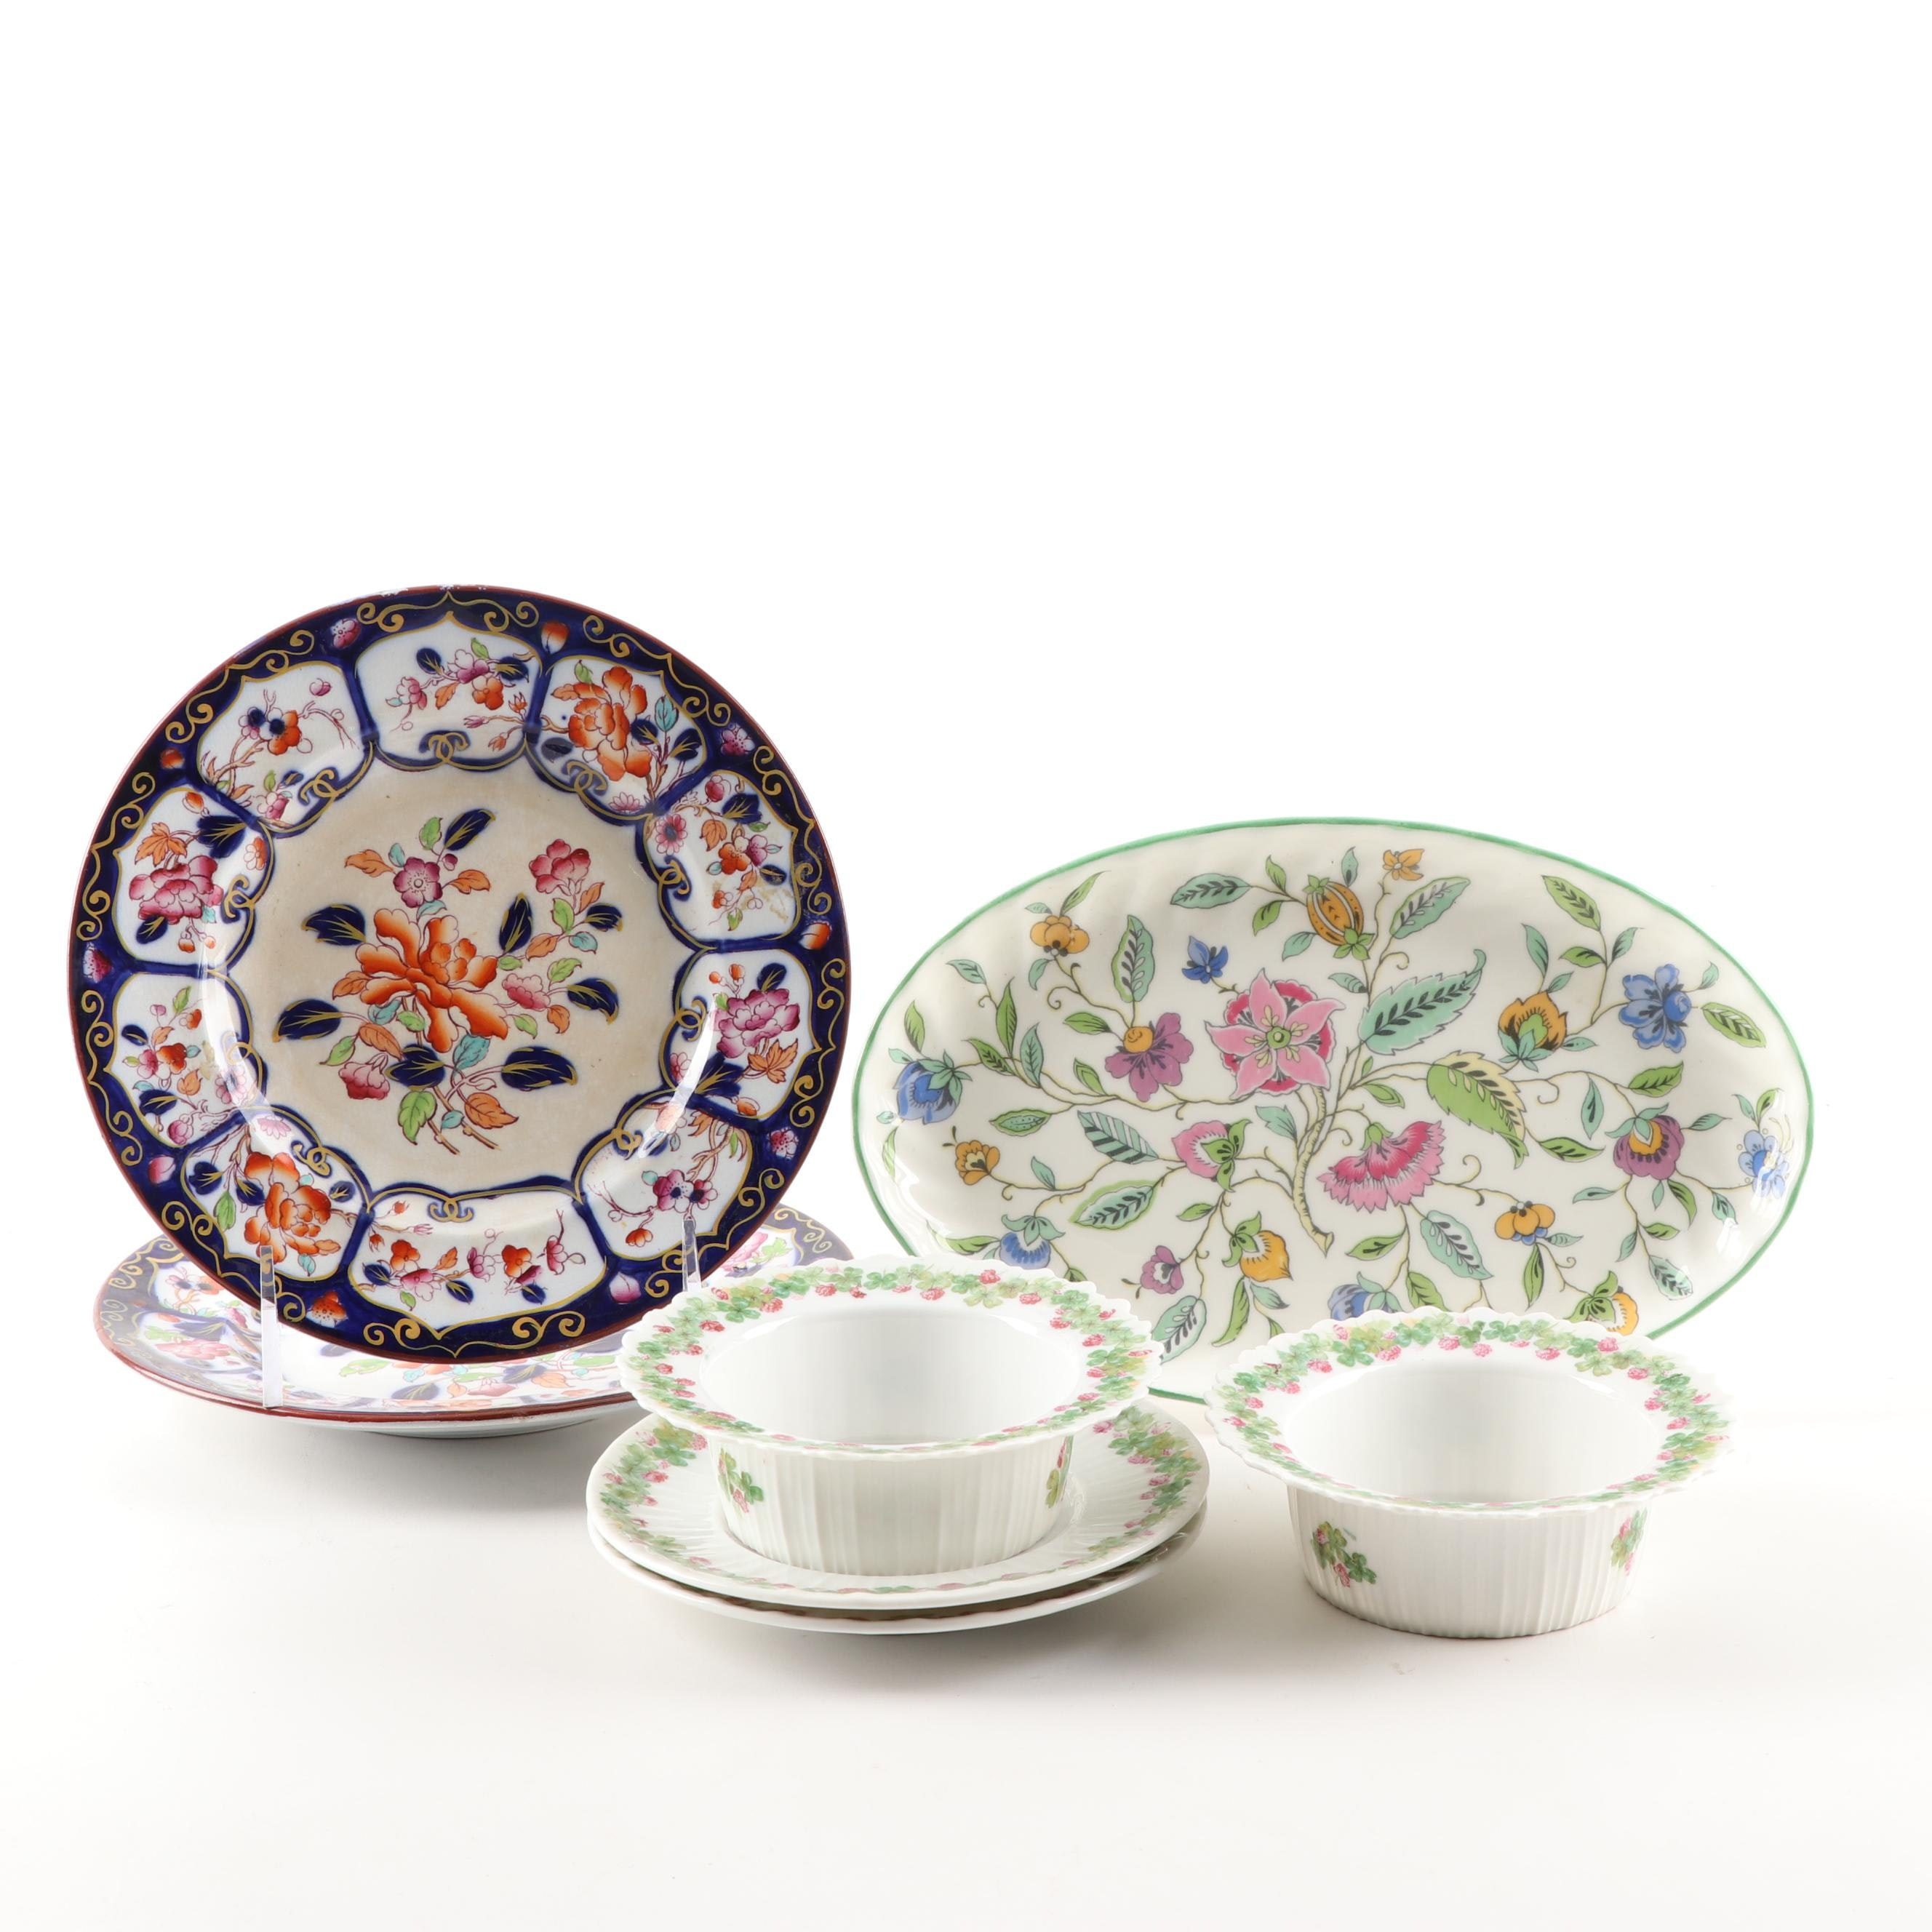 """Collection of Tableware Featuring Minton """"Haddon Hall"""" Platter"""